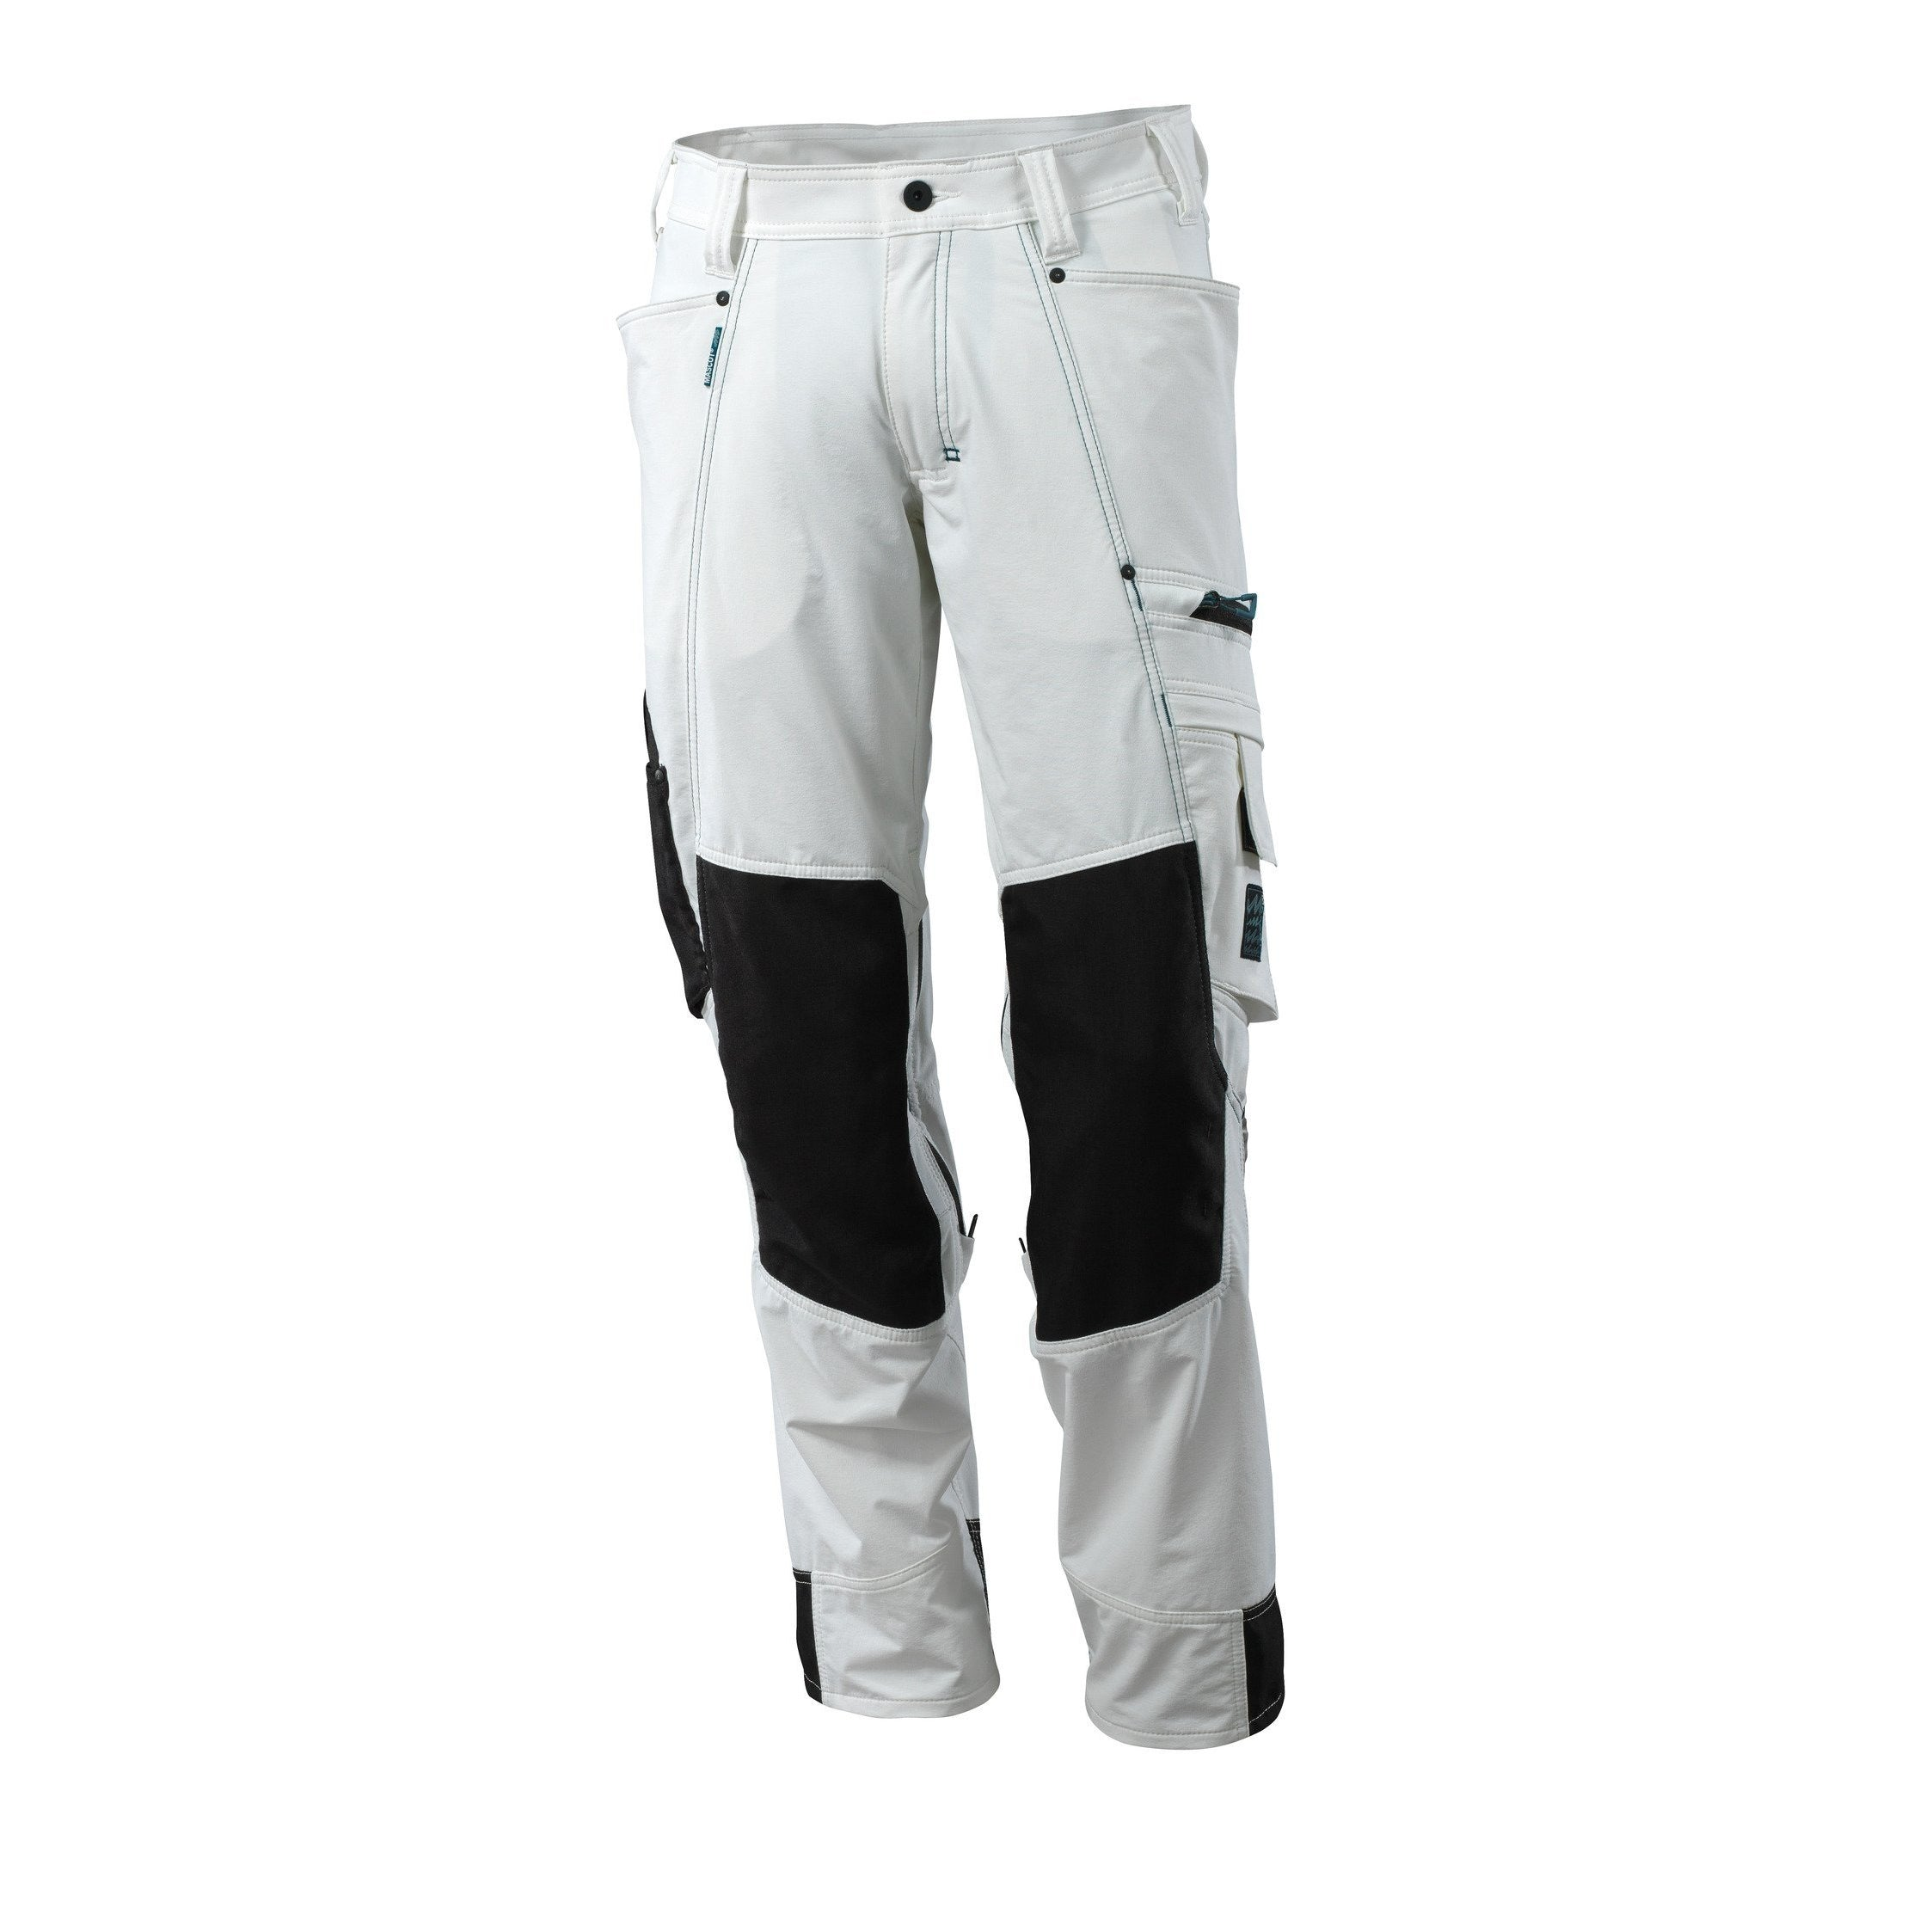 Mascot Advance Trousers With Kneepad Pockets